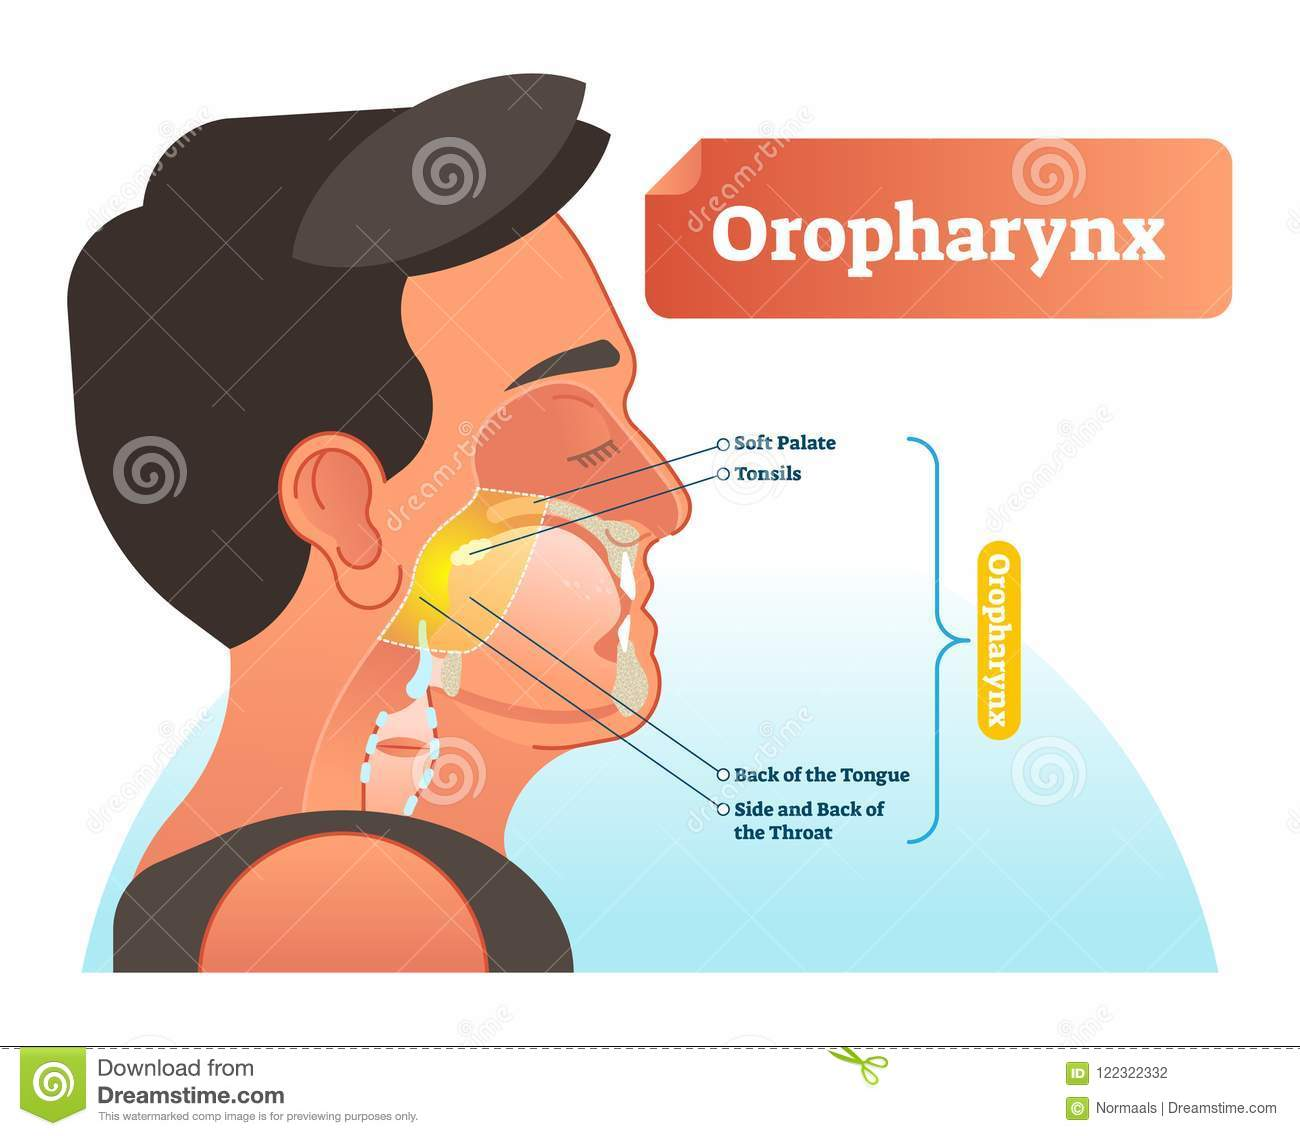 hight resolution of oropharynx vector illustration anatomical labeled scheme with human soft palete tonsils back of tongue and side of throat